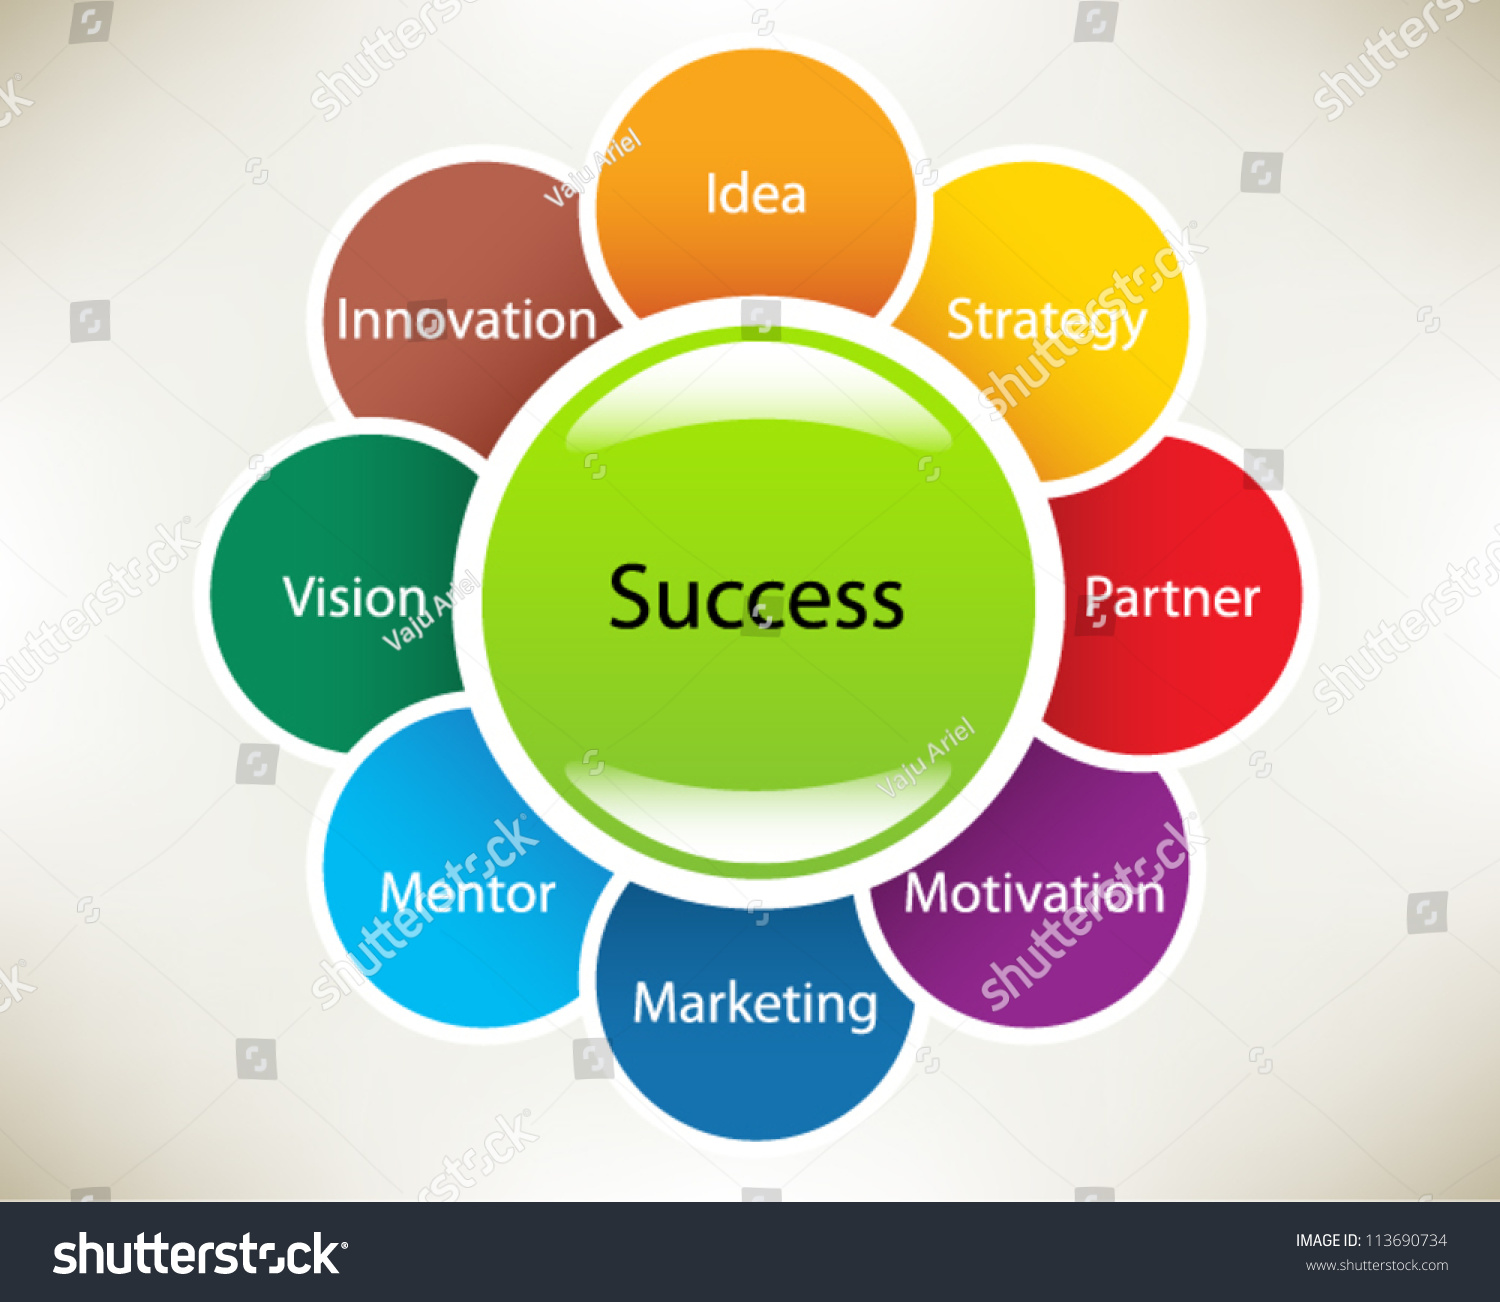 innovation and success How successful companies sustain innovation what can we learn from those who did it once (rim), those who failed and rebounded  ongoing success: pfizer,.